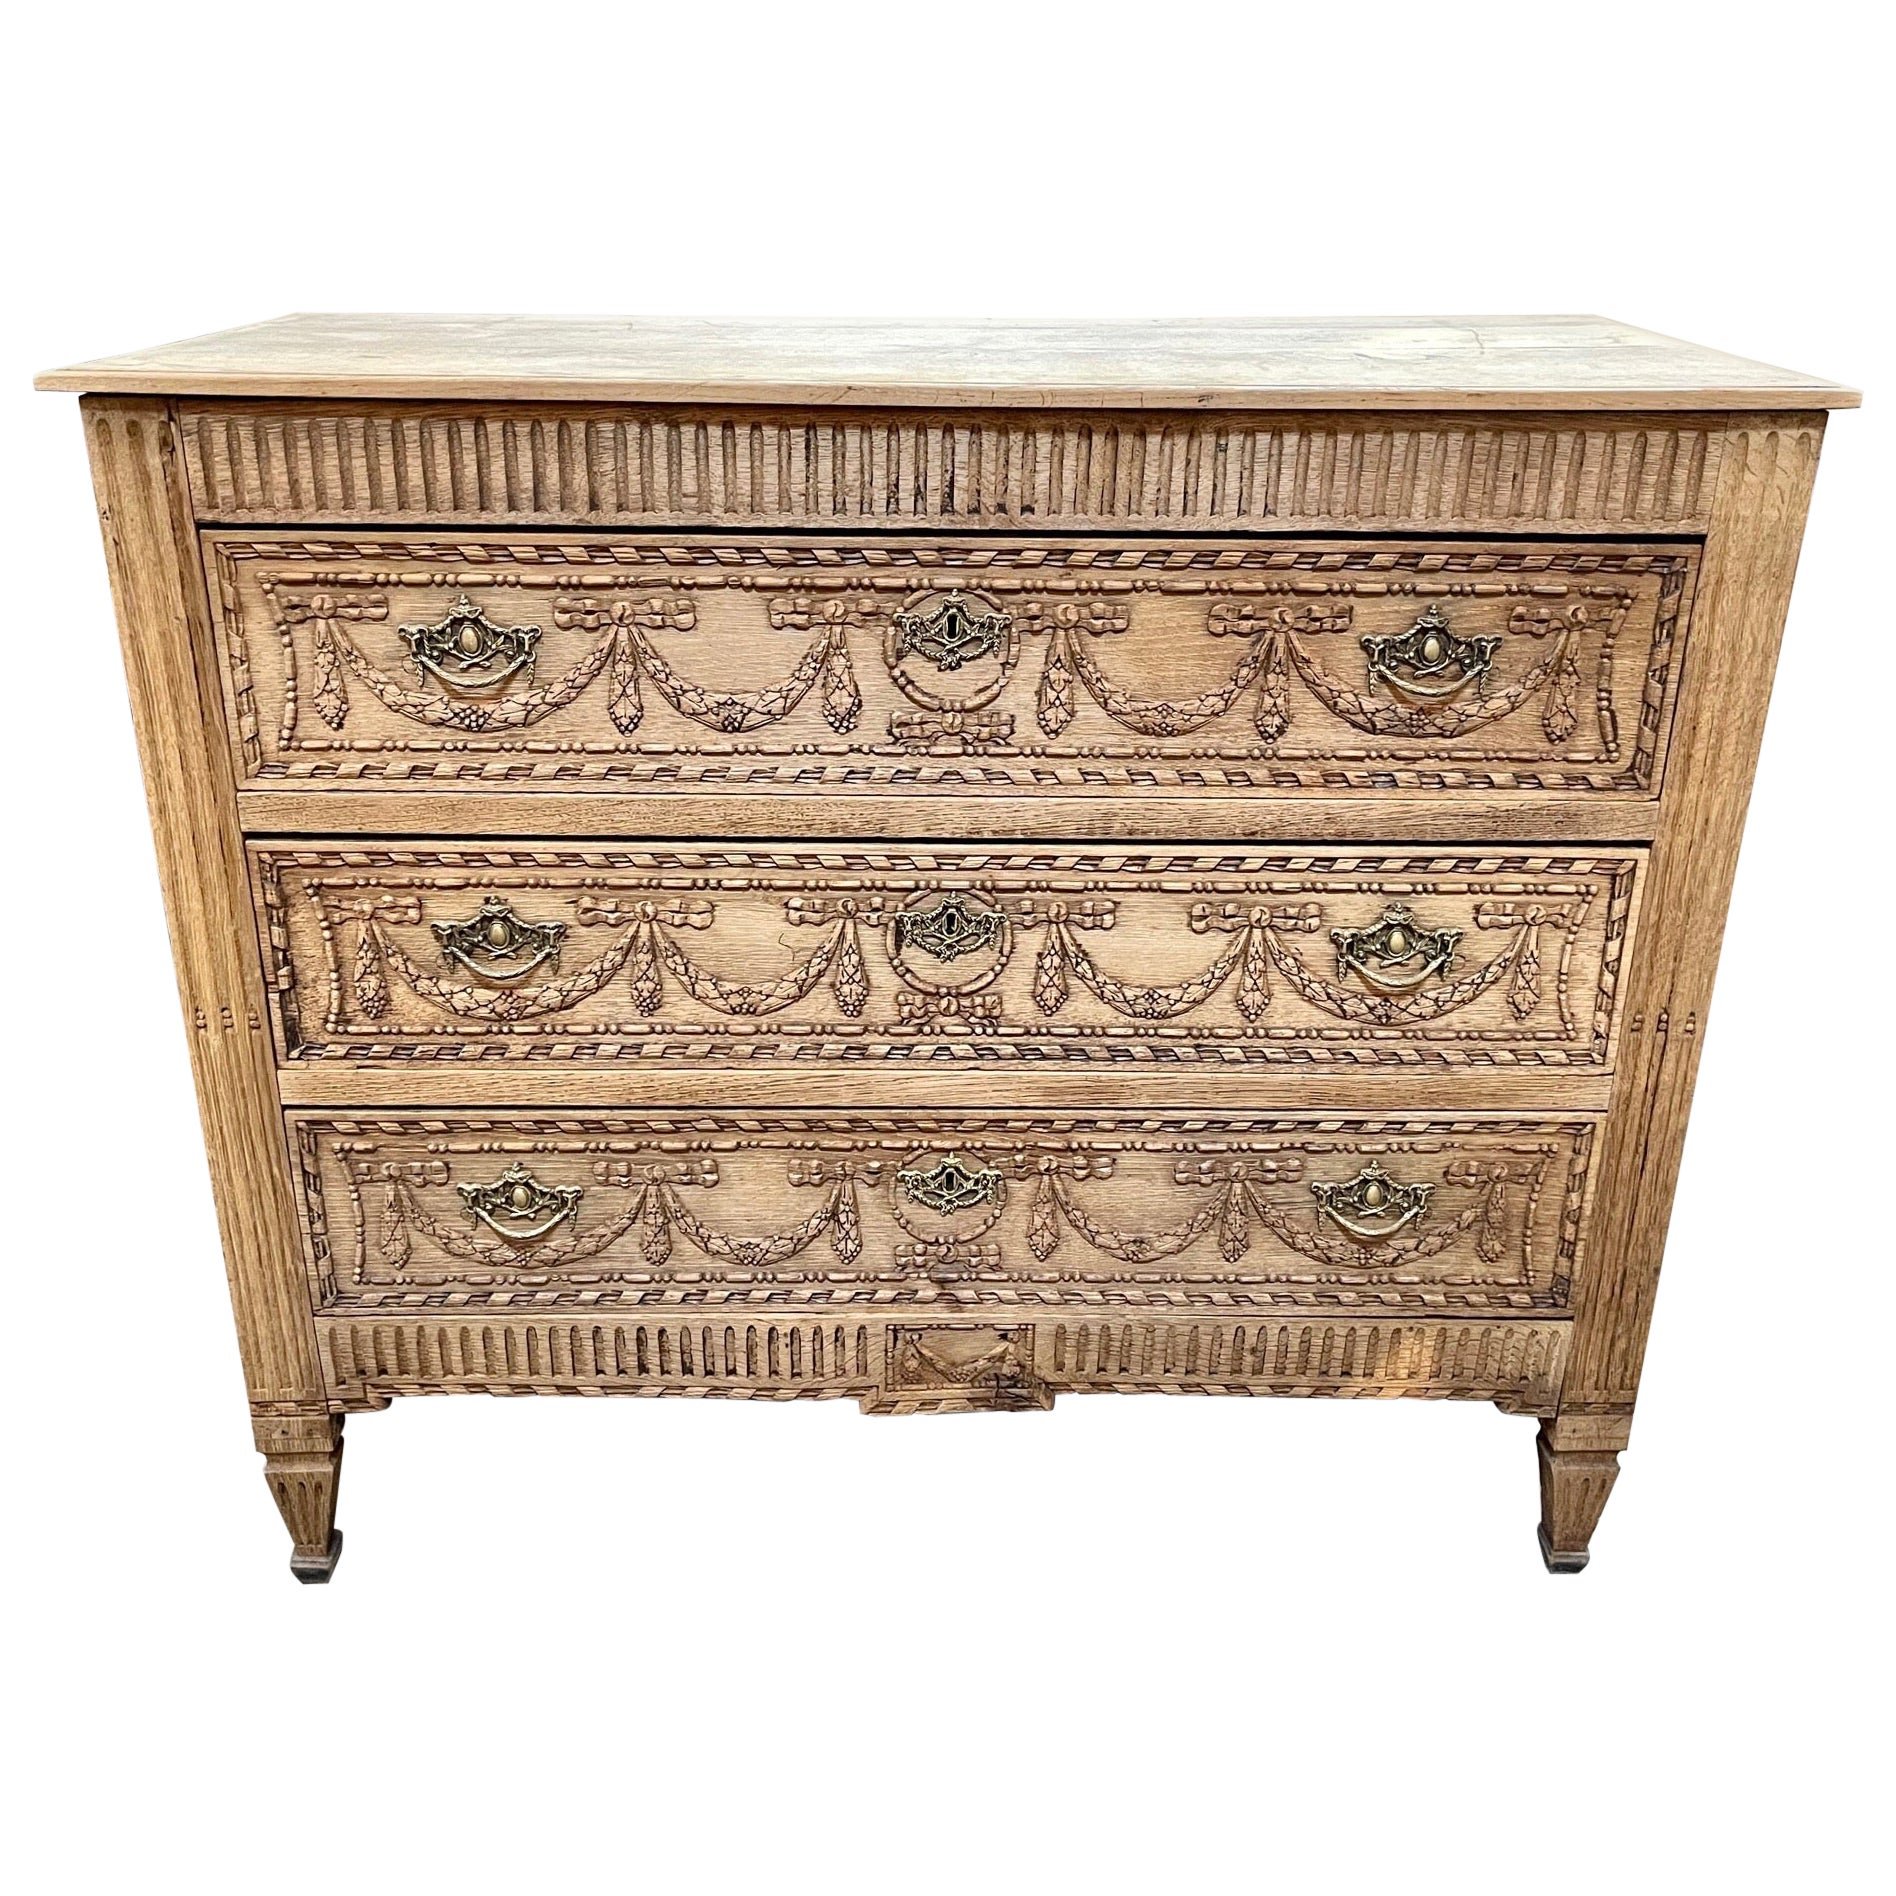 Early 19th Century French Louis XVI Style Bleached Commode